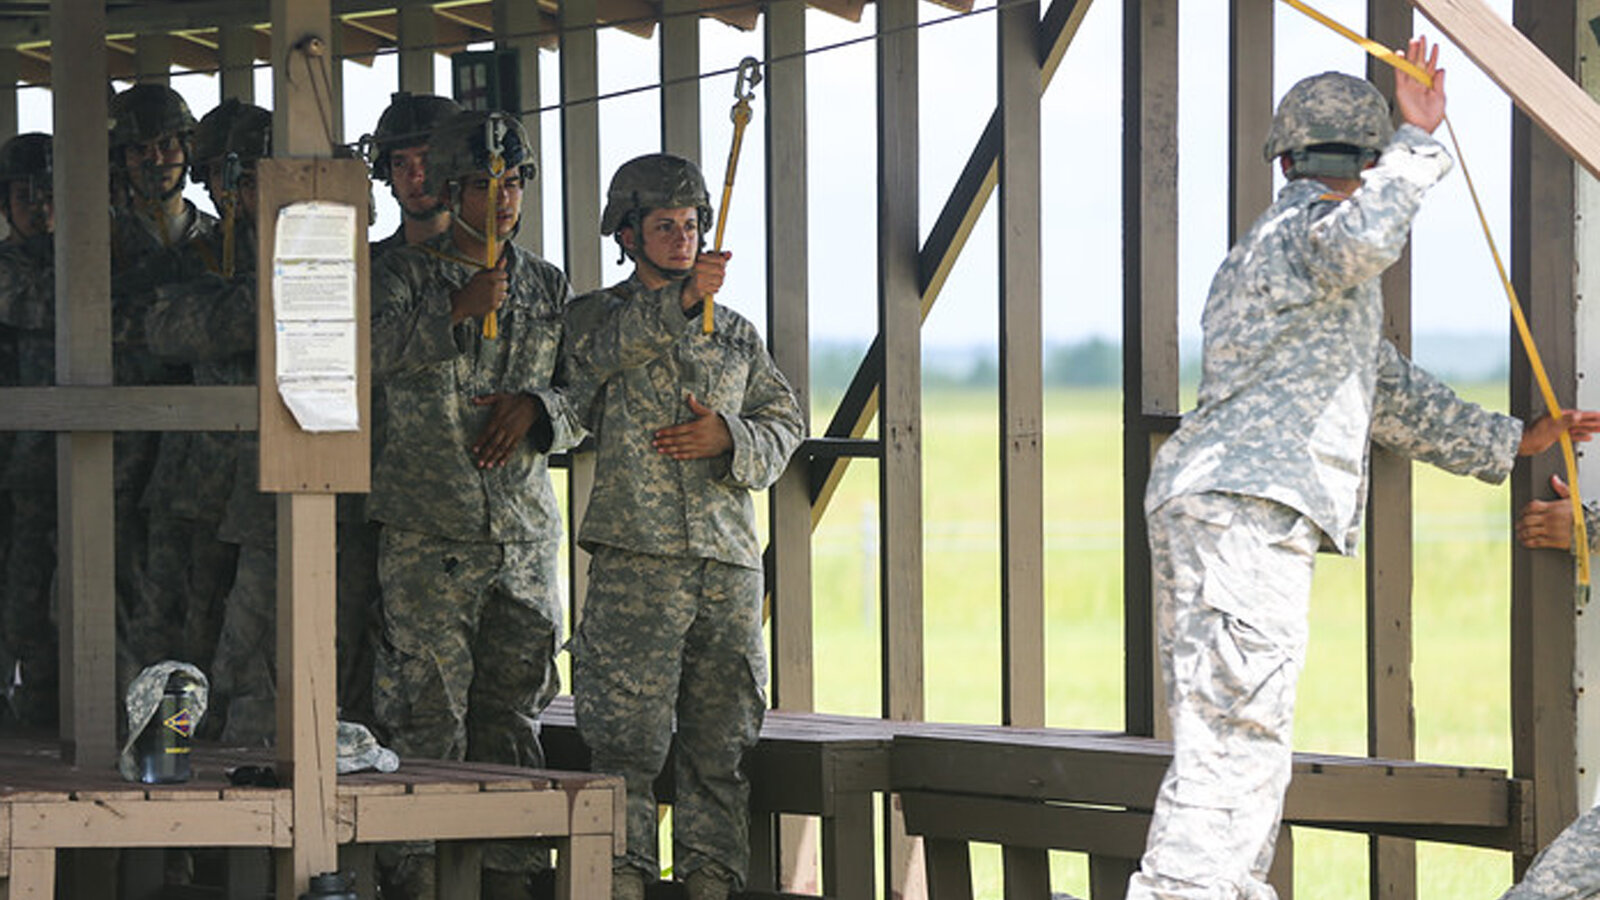 A woman participates in the final phase of U.S. Army Ranger training, taking place in the hot humid swamps of the Eglin Air Force Base, Fla., earlier this year. For the first time, two women completed the training, the military announced Monday.